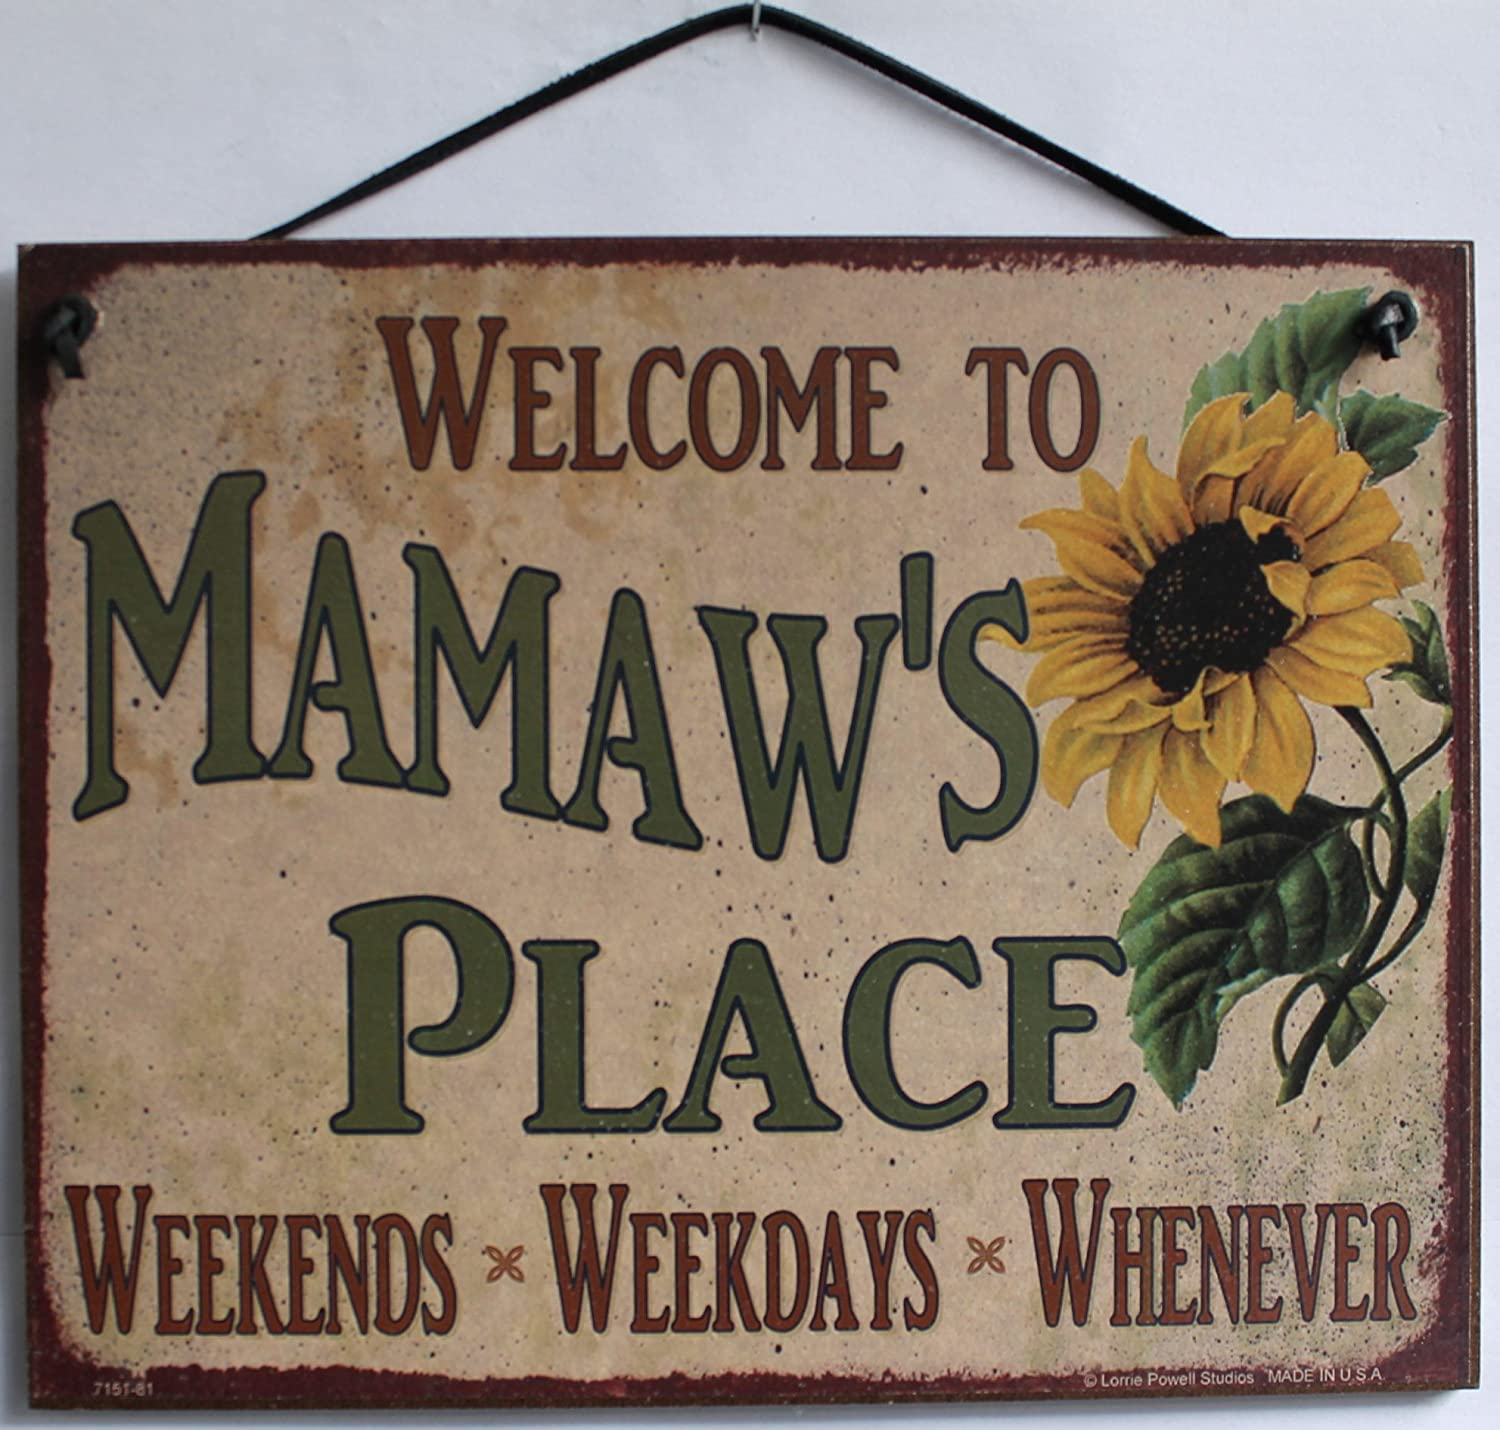 Weekdays Egberts Treasures 5x8 Vintage Style Sign with Sunflower Saying Whenever Decorative Fun Universal Household Signs from Welcome to G.G.S PLACE Weekends